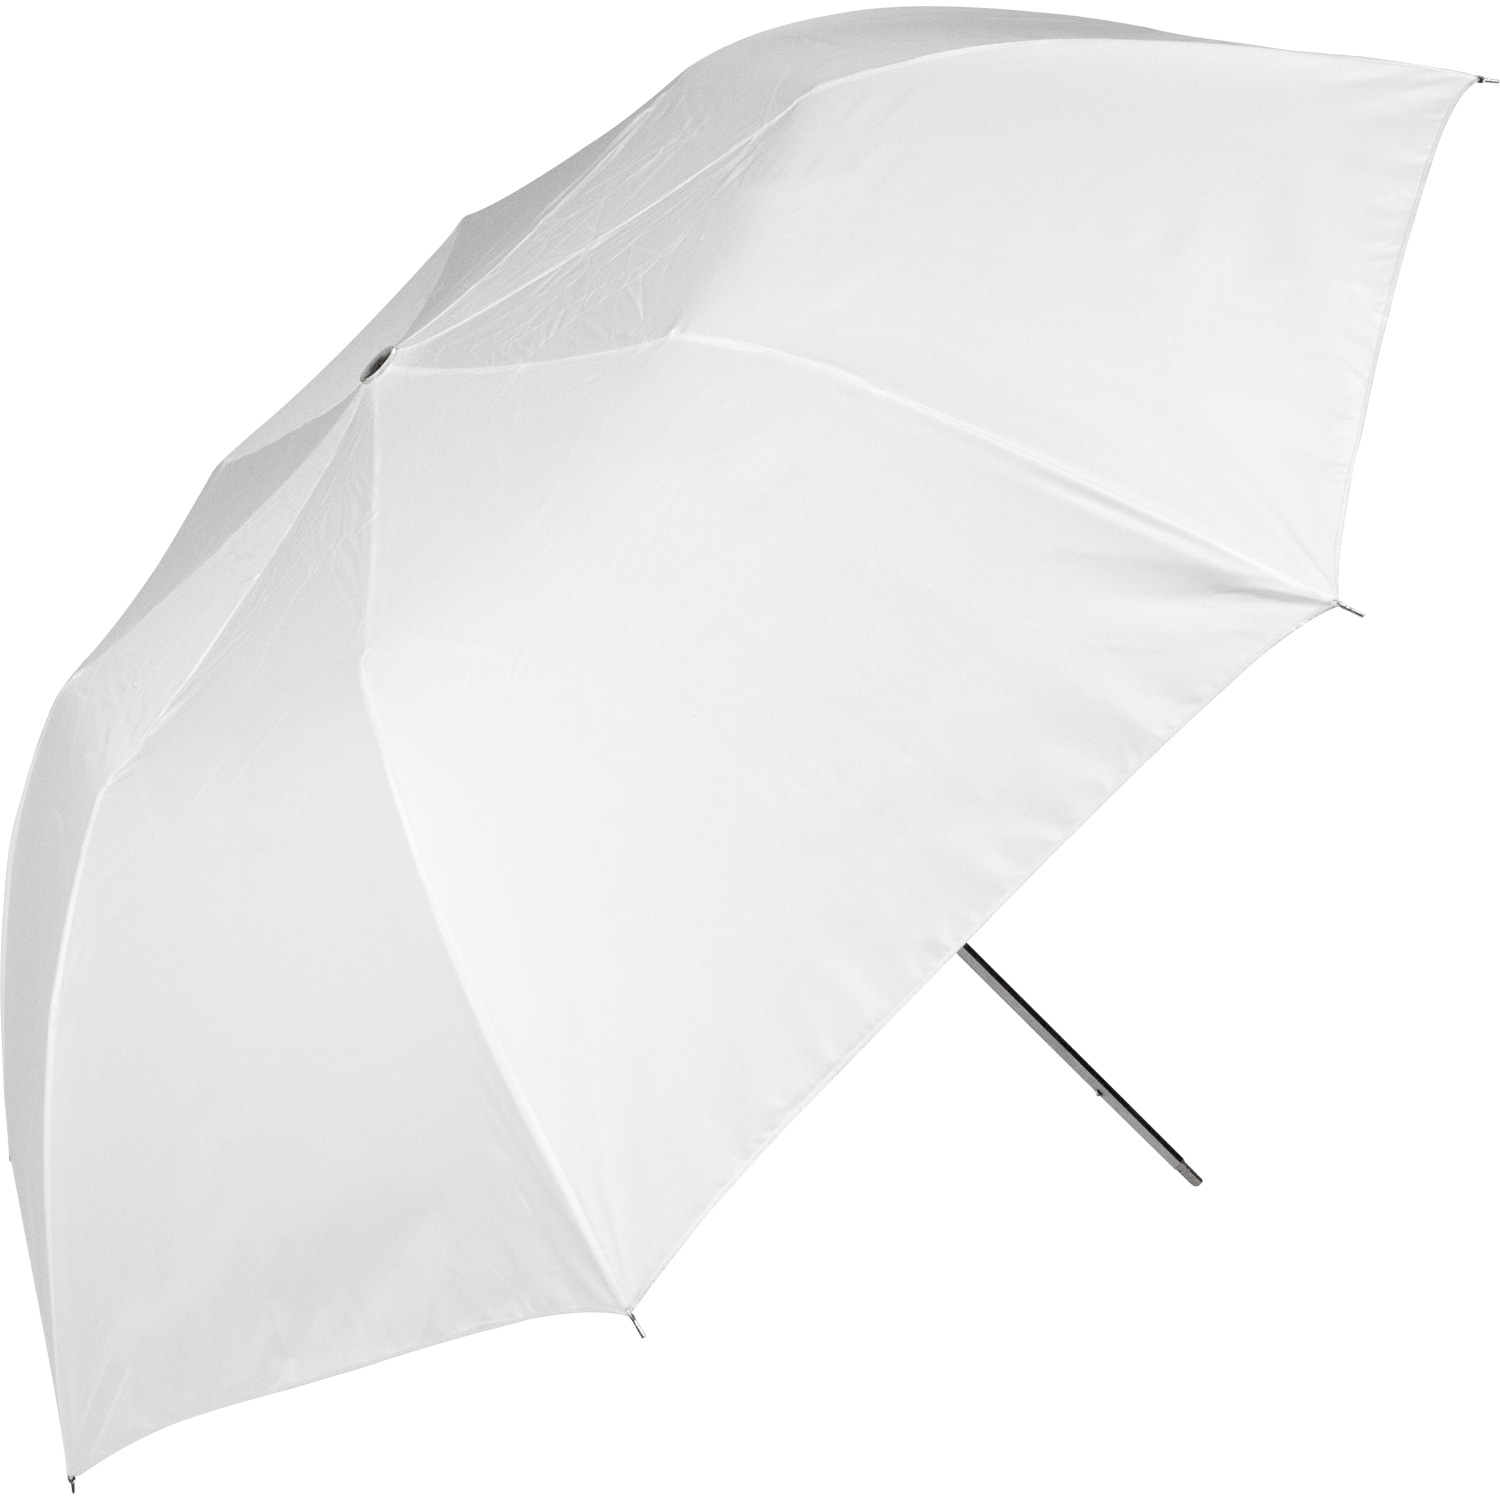 43-in. Optical White Satin Collapsible Umbrella